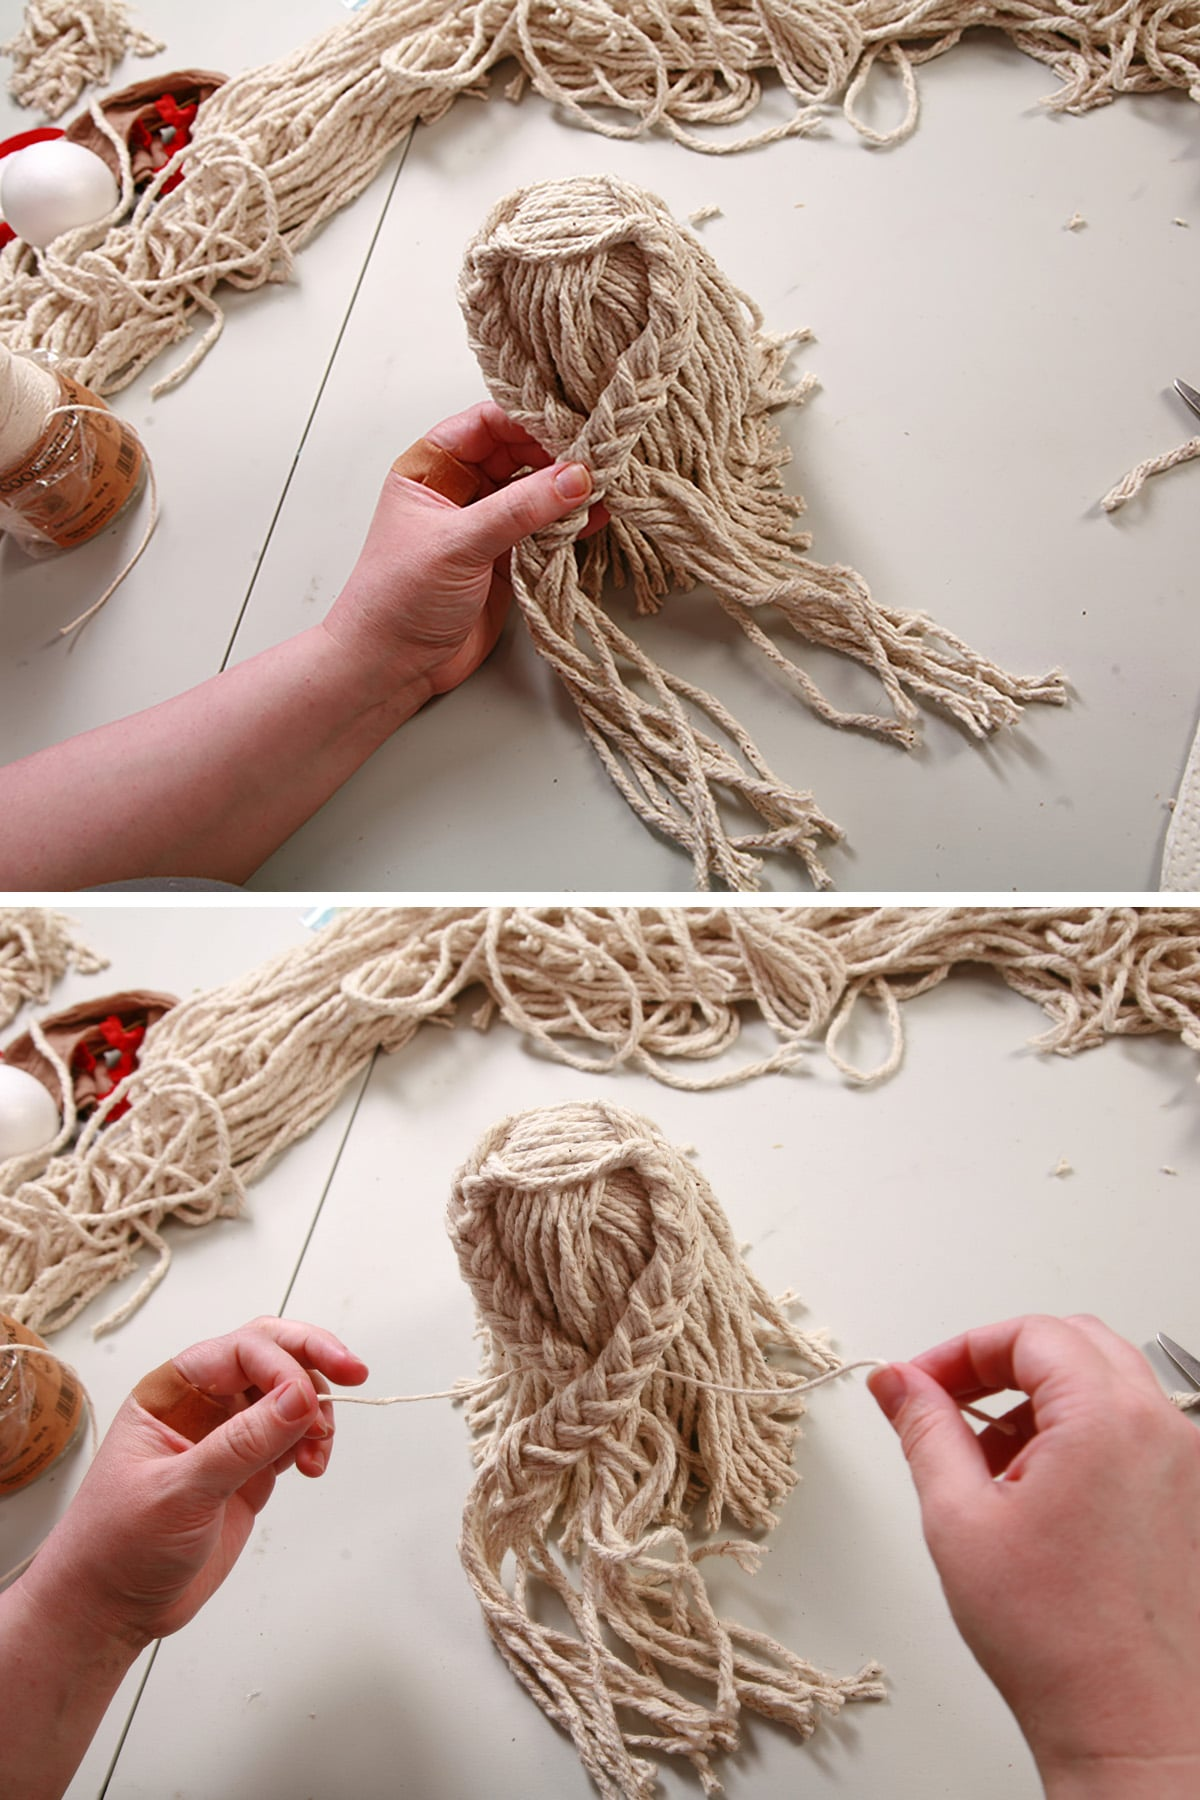 The two braids being pulled to the front of the mop doll and secured to make the arms.